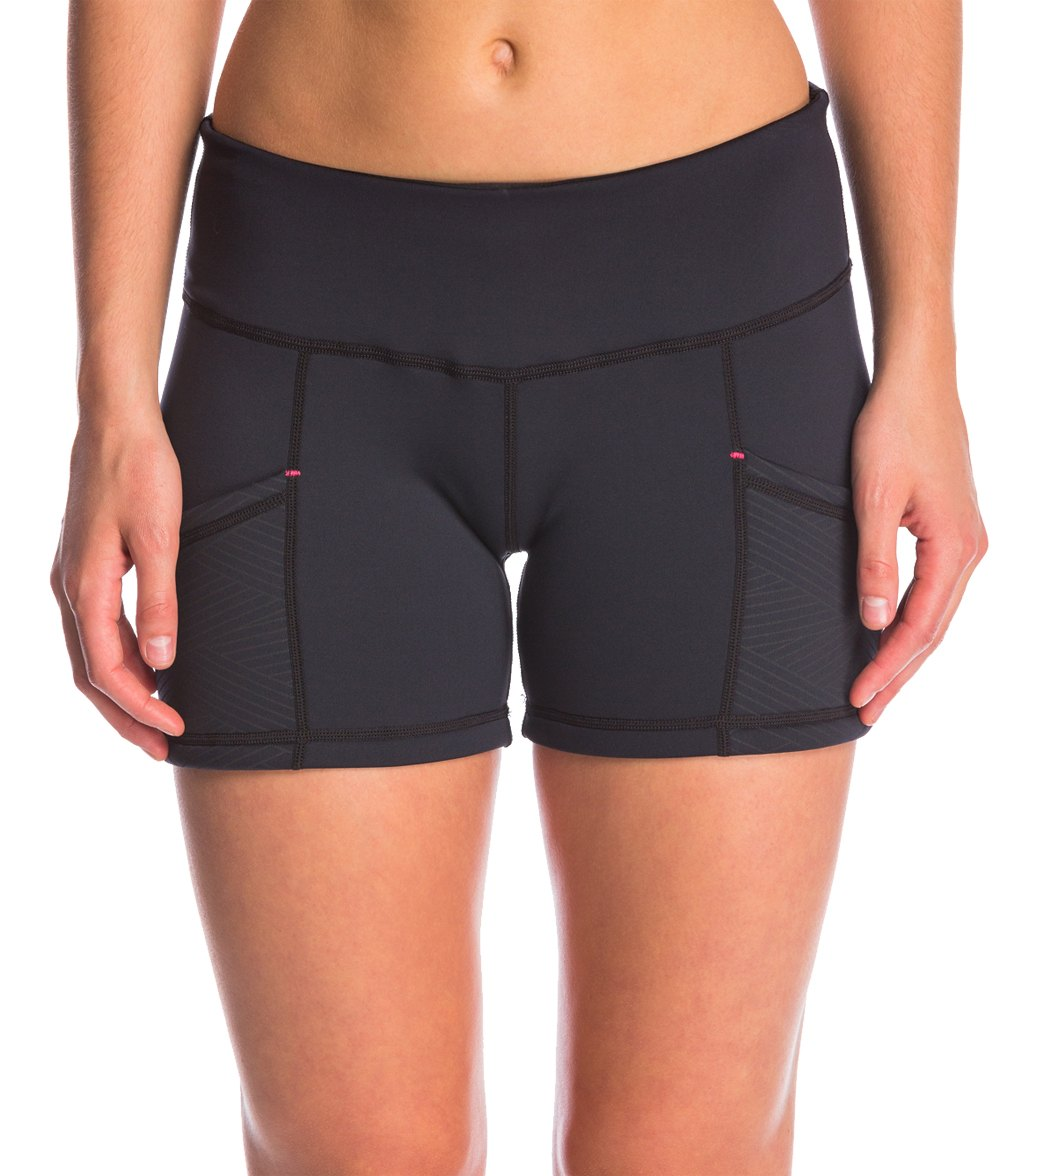 60794d7ffc Level Six Women's 0.5MM Sombrio Neoprene Wetsuit Short at SwimOutlet.com - Free  Shipping